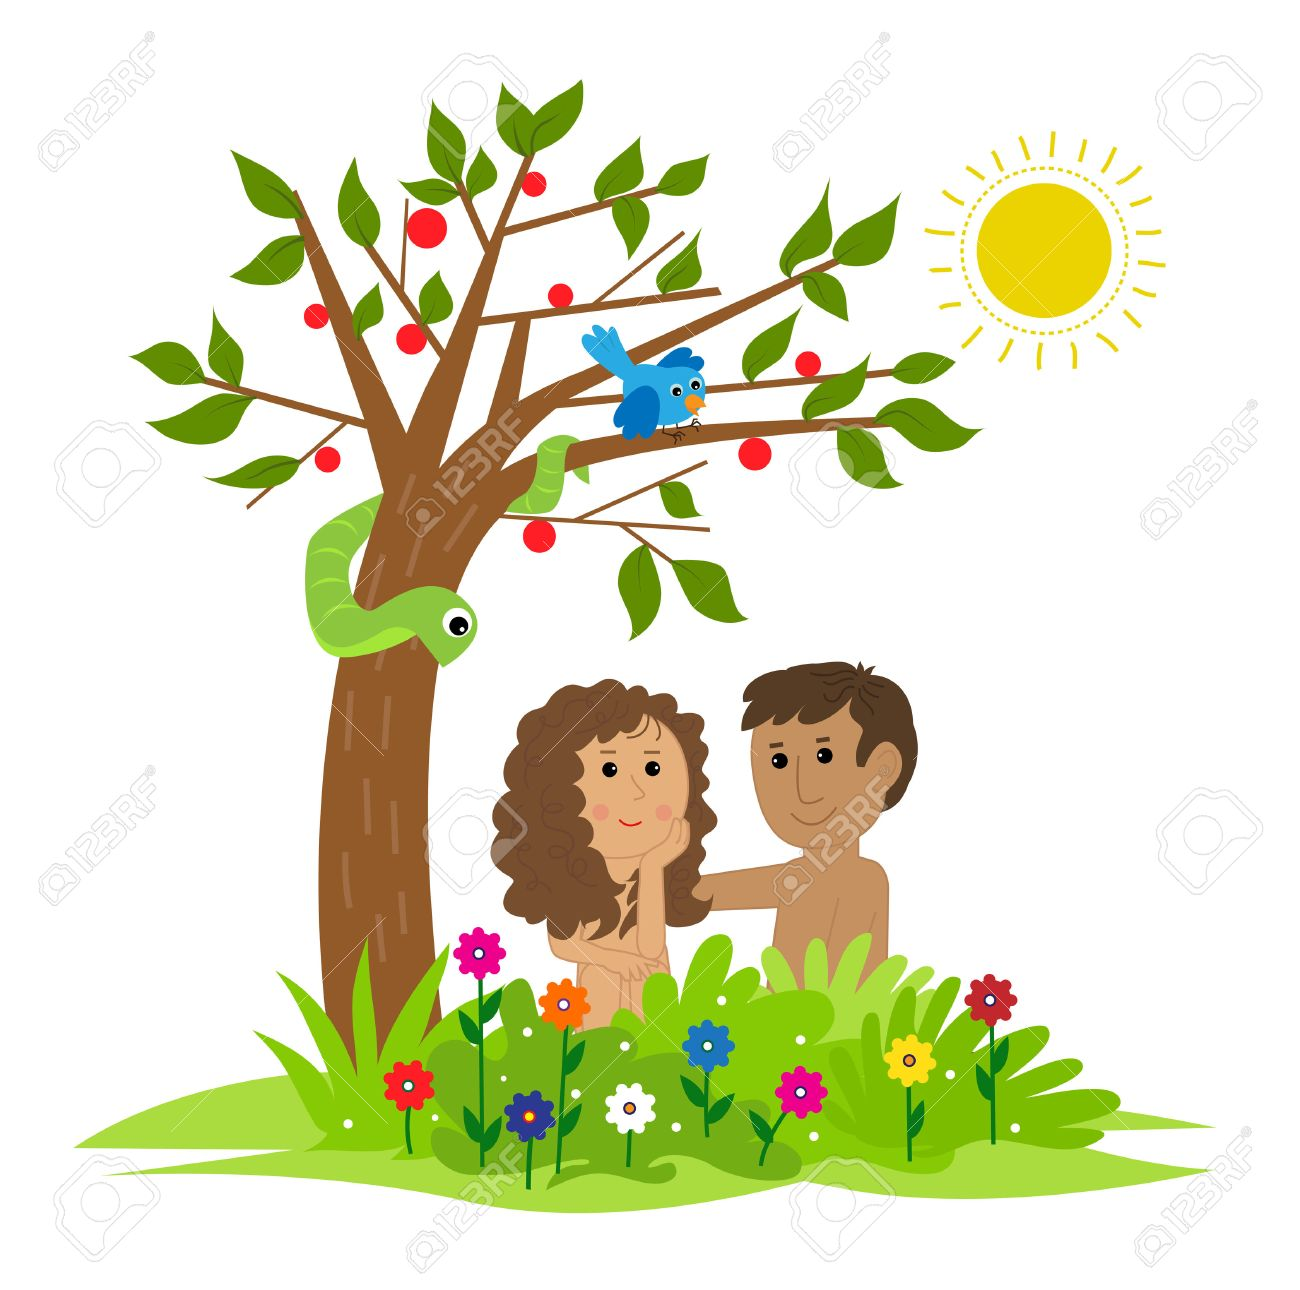 Cute clip art of Adam and Eve sitting under a tree in the garden...